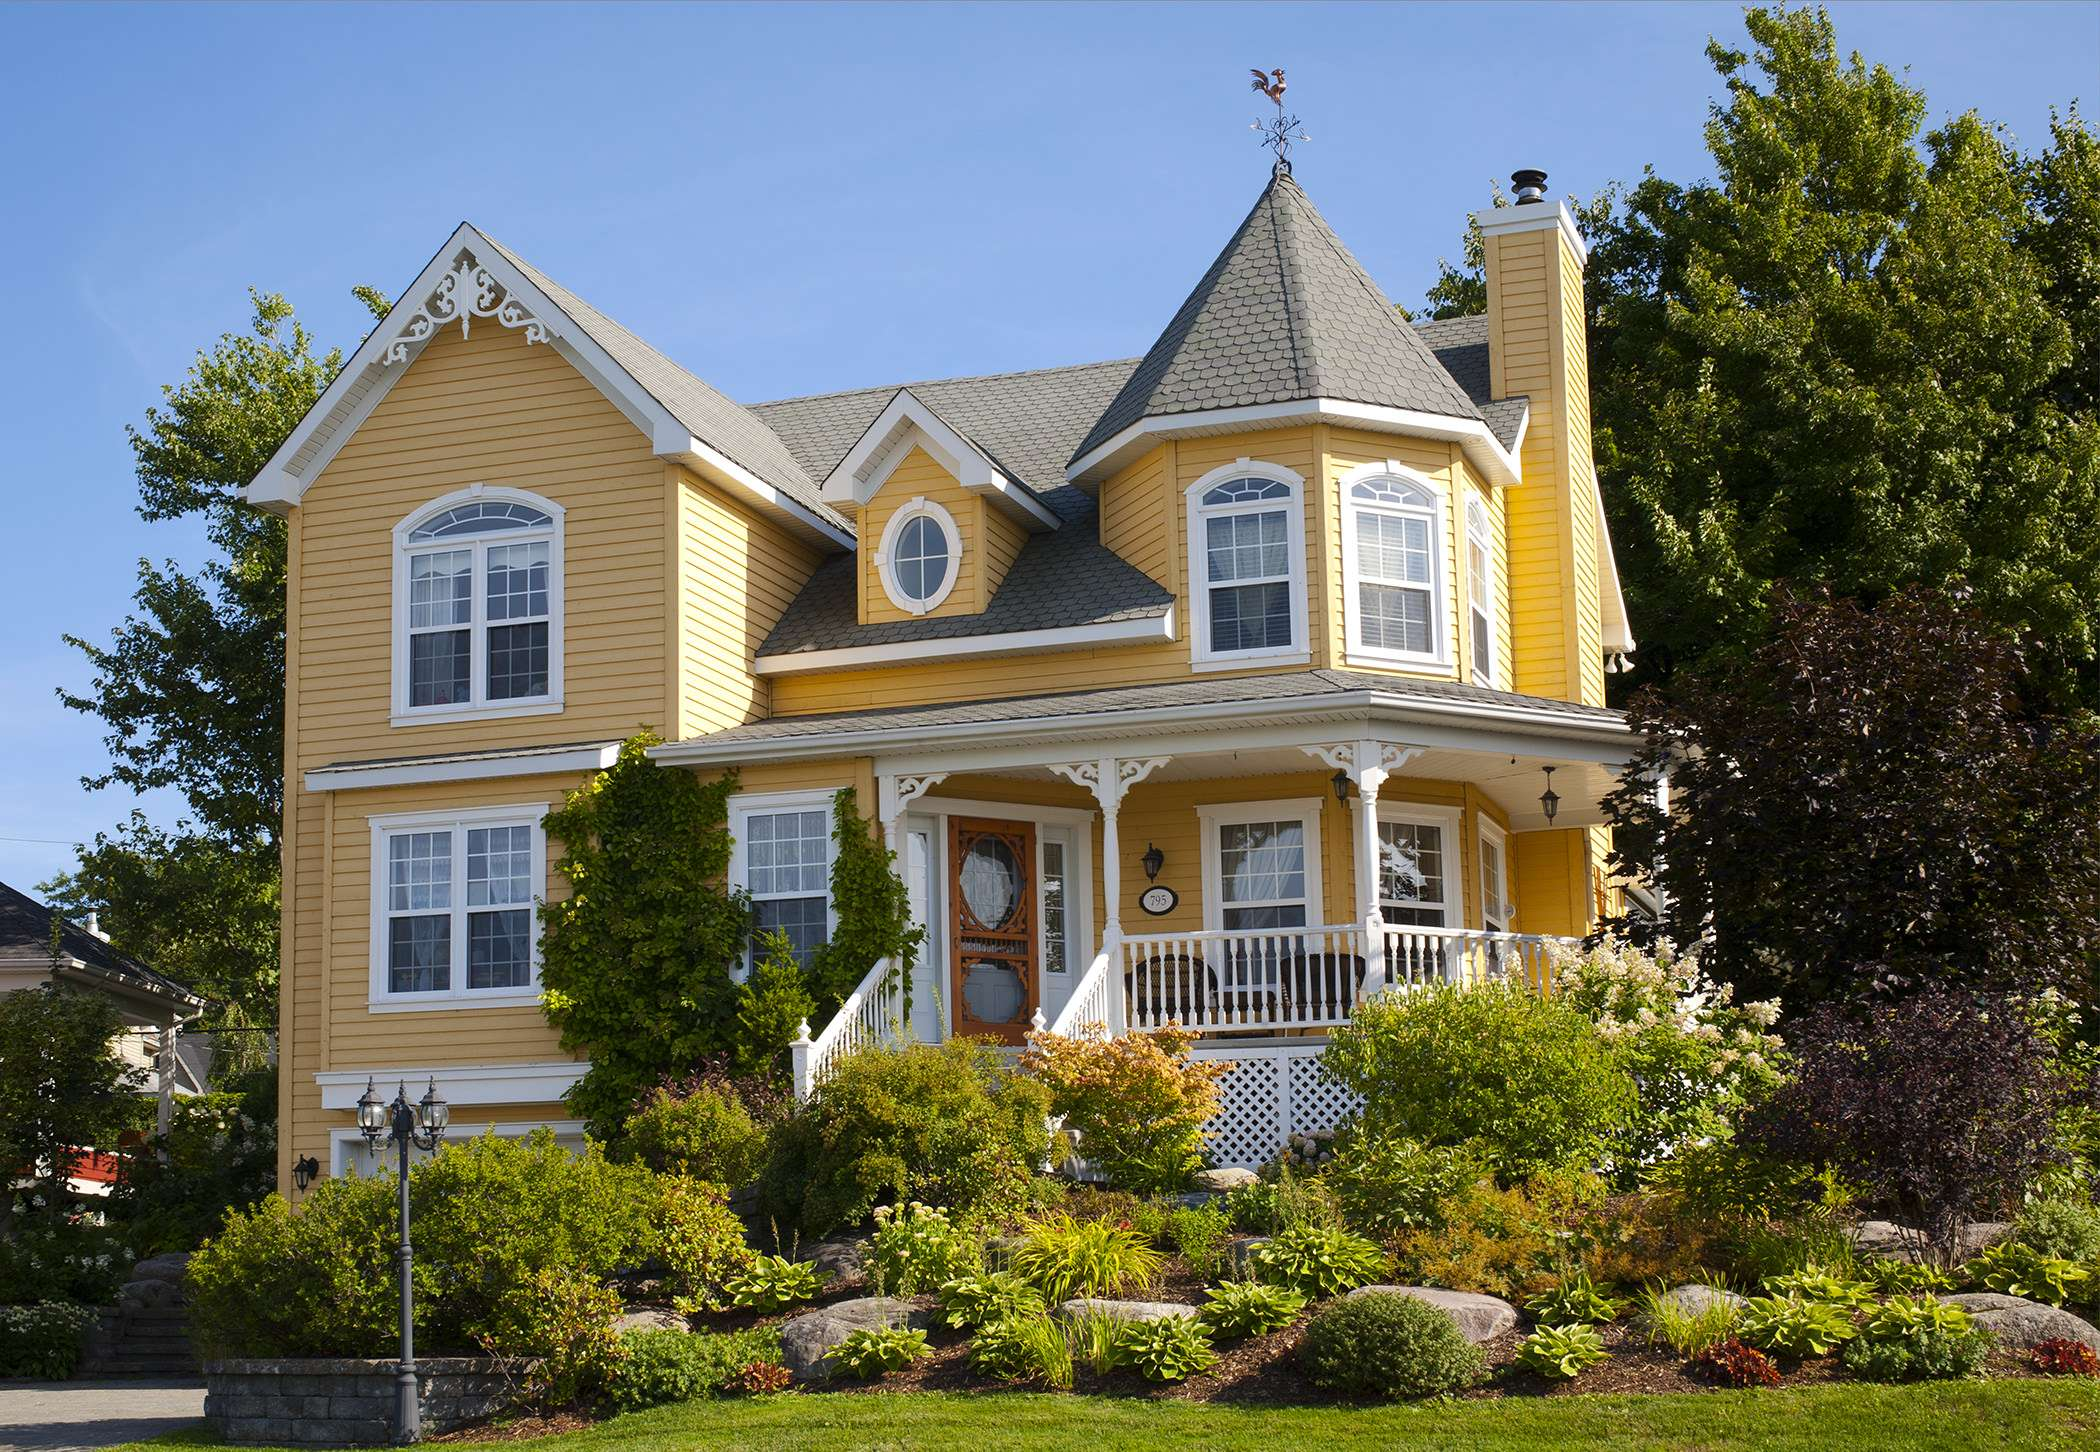 Yellow house with white windows and a garden